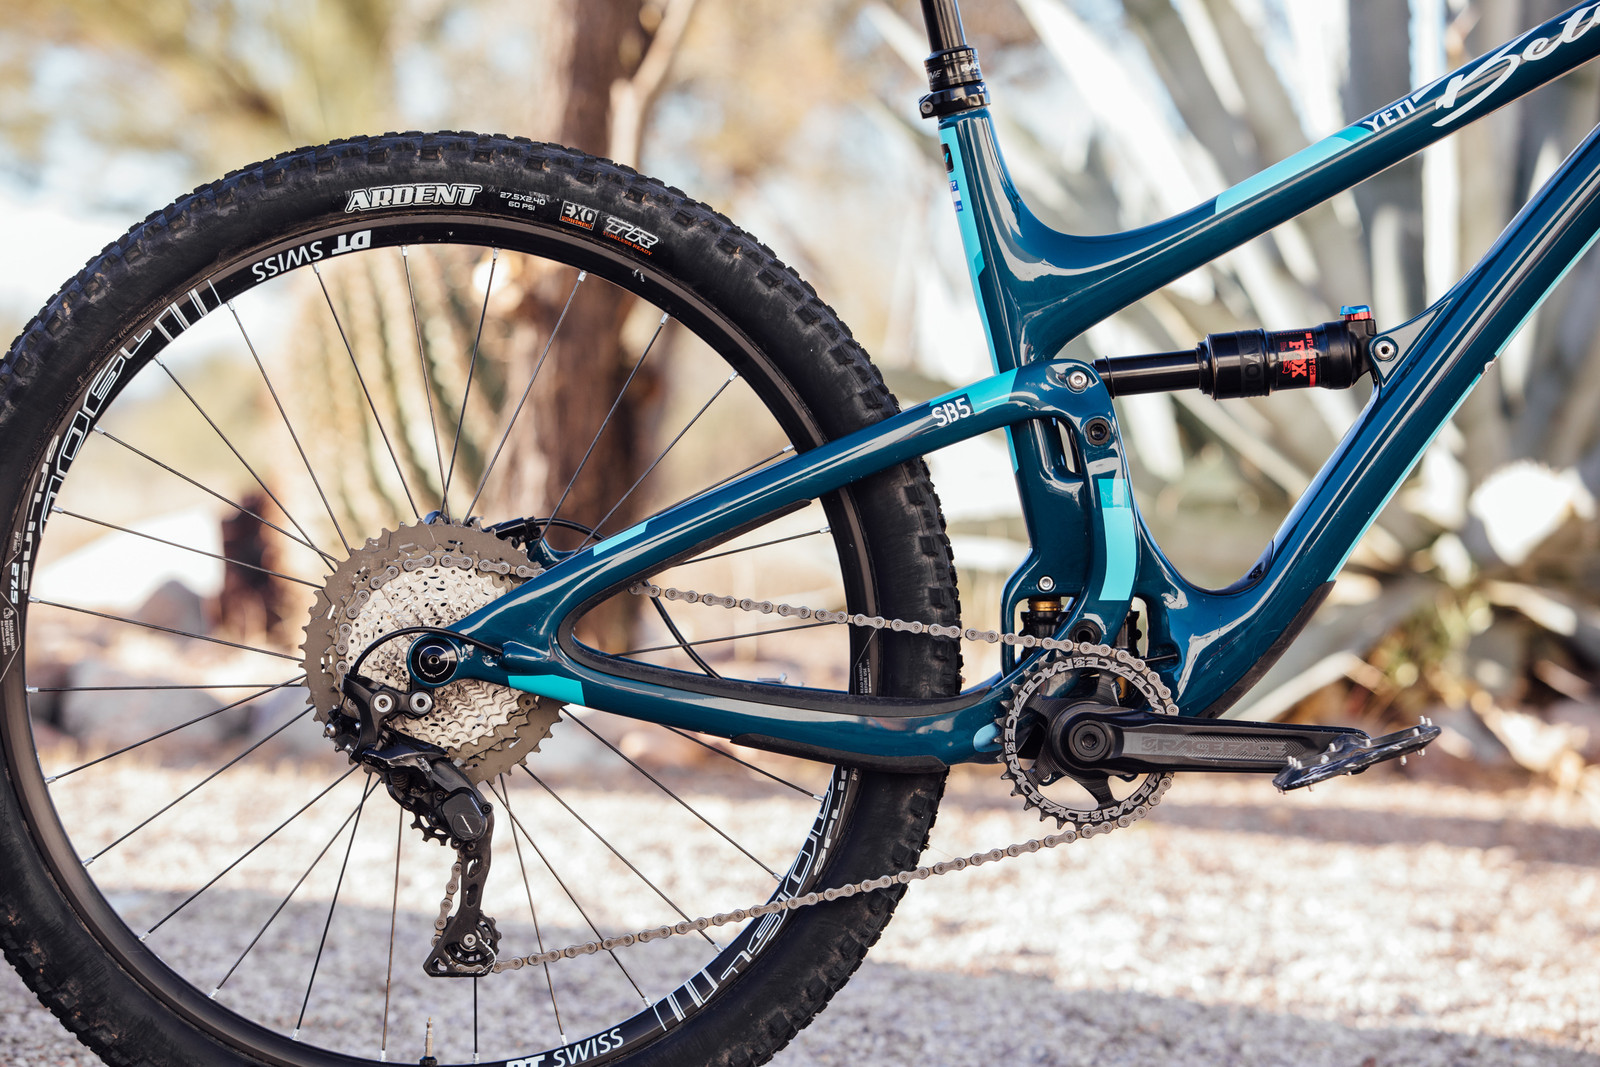 Yeti Beti SB5 Carbon XT / SLX - 2017 Vital MTB Test Sessions - Yeti Beti SB5 Carbon XT / SLX - 2017 Vital MTB Test Sessions - Mountain Biking Pictures - Vital MTB